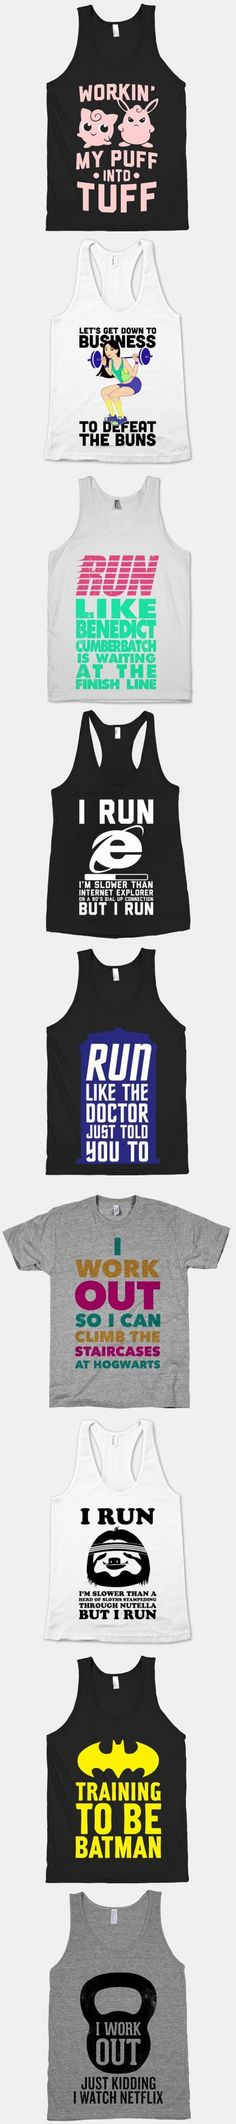 Workout Shirts You Didn't Know You Needed... this makes me smile : )